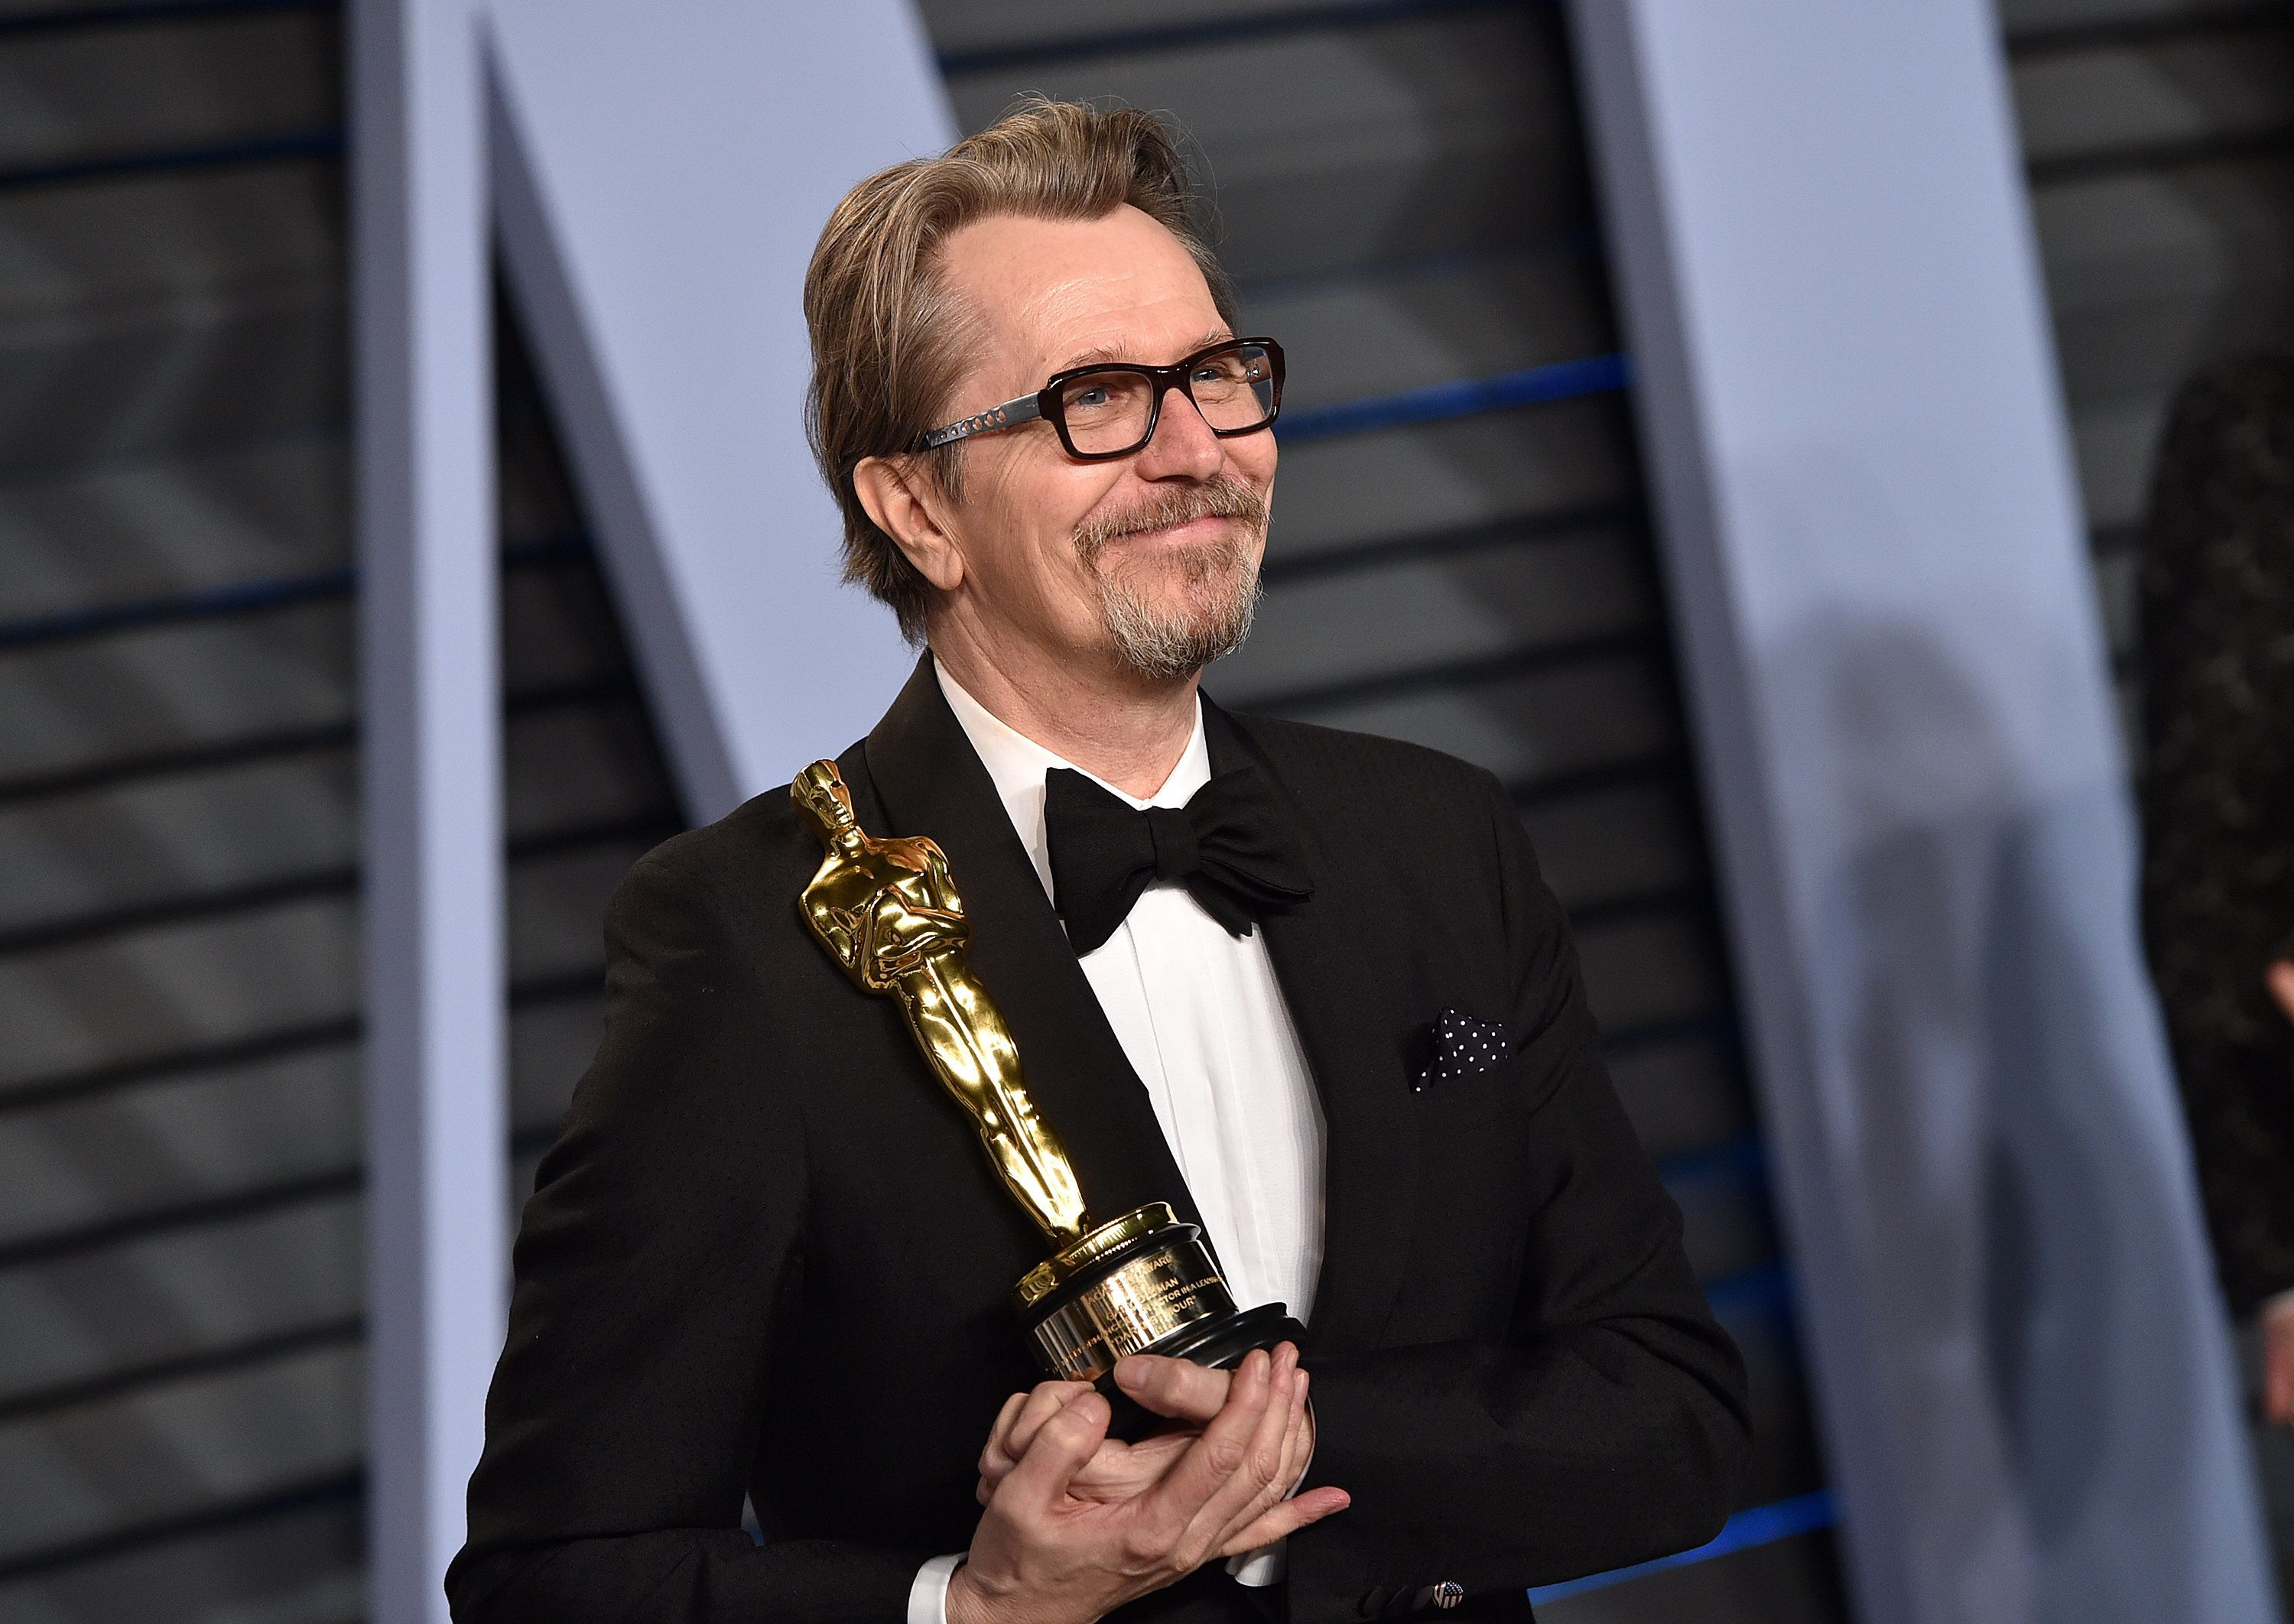 Who Is Gary Oldman's Wife? Meet Gisele Schmidt, Oscar Nominee's Better Half